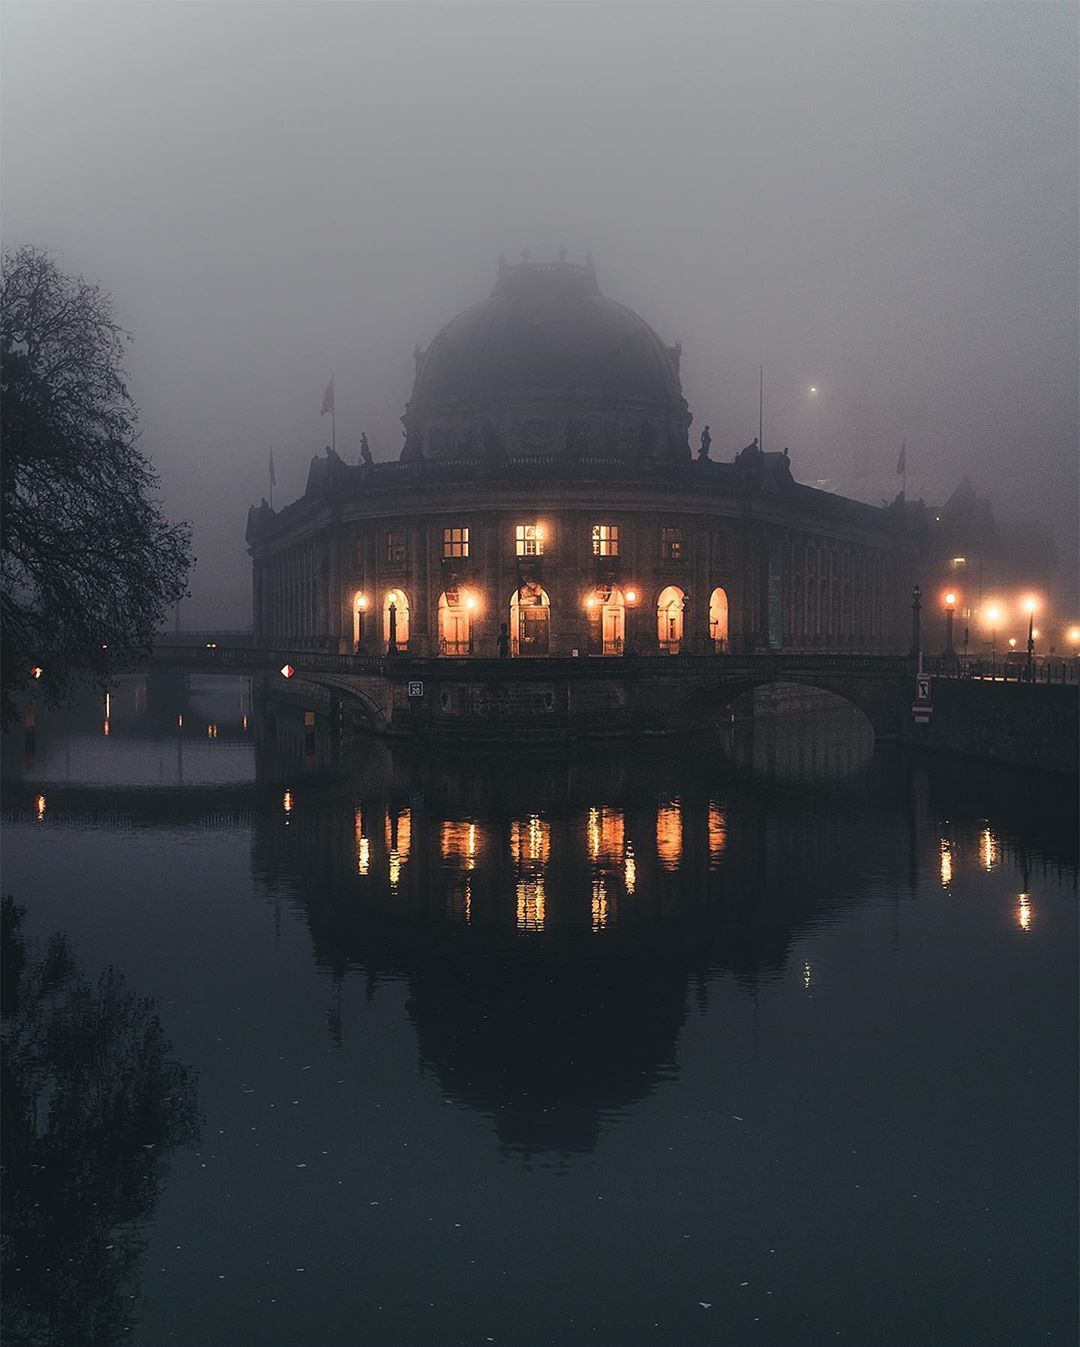 Marcello Zerletti Auf Instagram Museum Island This Morning Foggy Moody Atmosphere At Its Best I Wish You A Fantastic Day Werbung Museum Insel Insel Museum